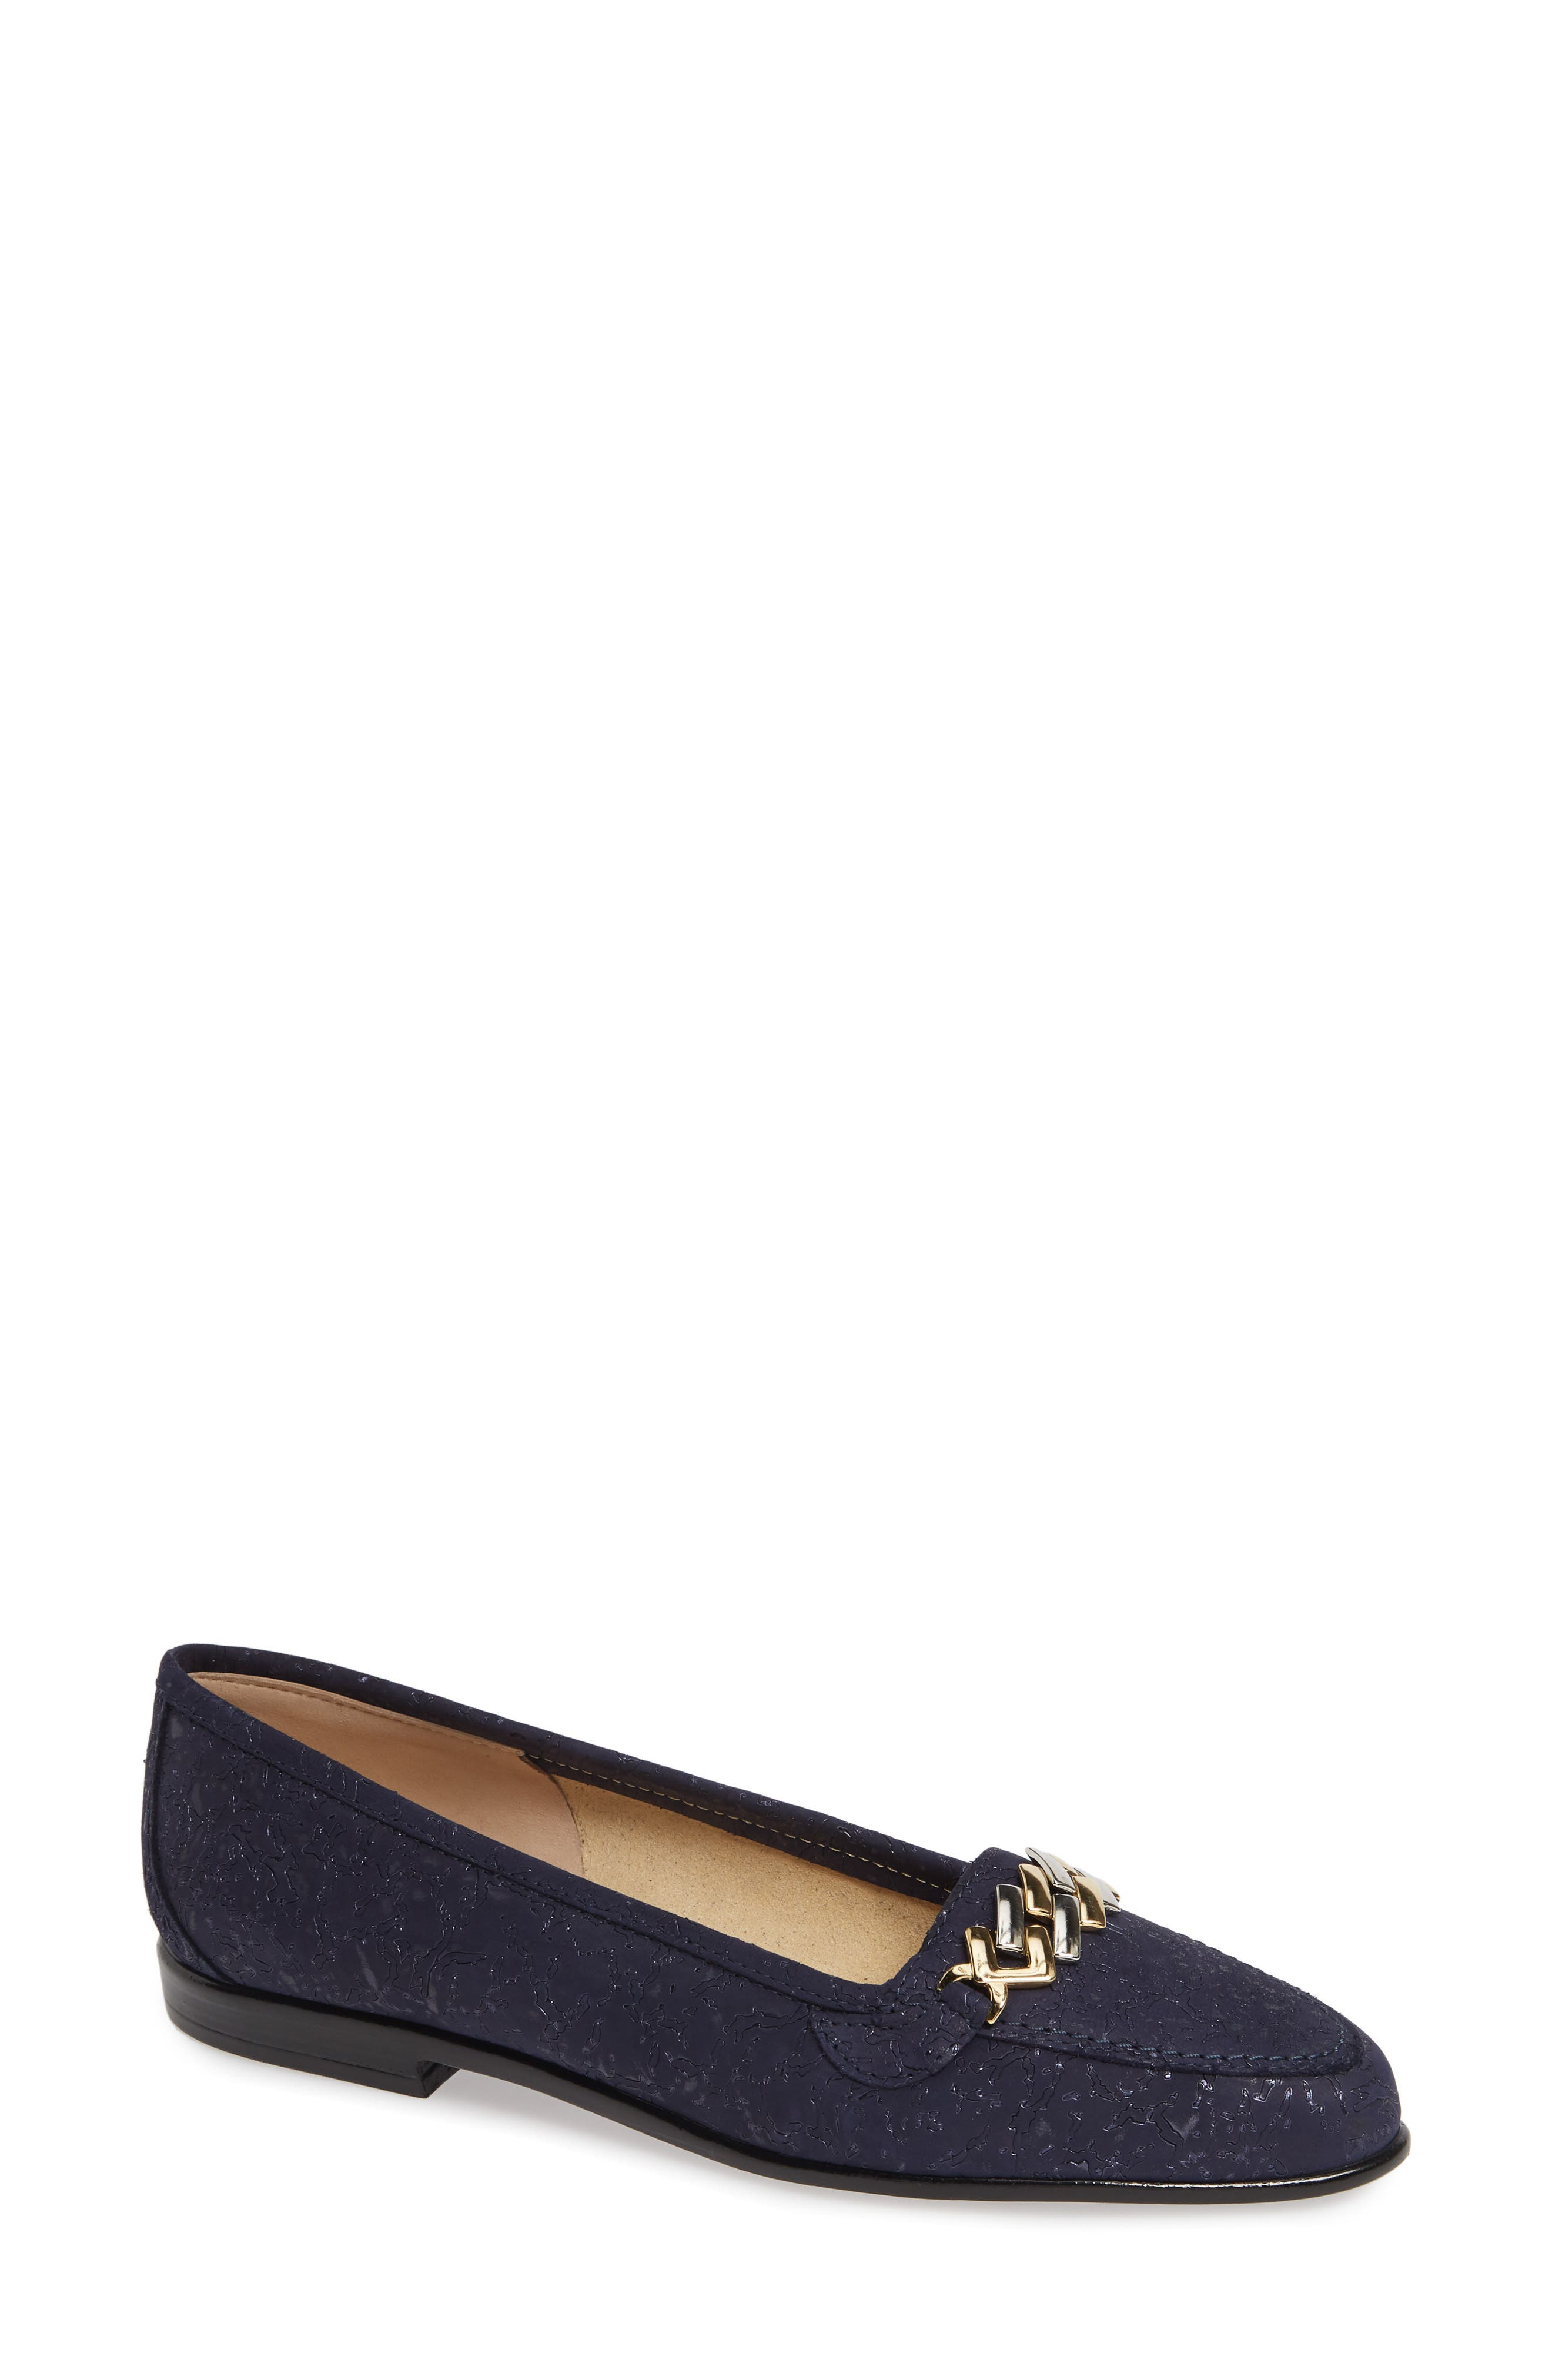 AMALFI BY RANGONI Oste Loafer in Navy Printed Leather